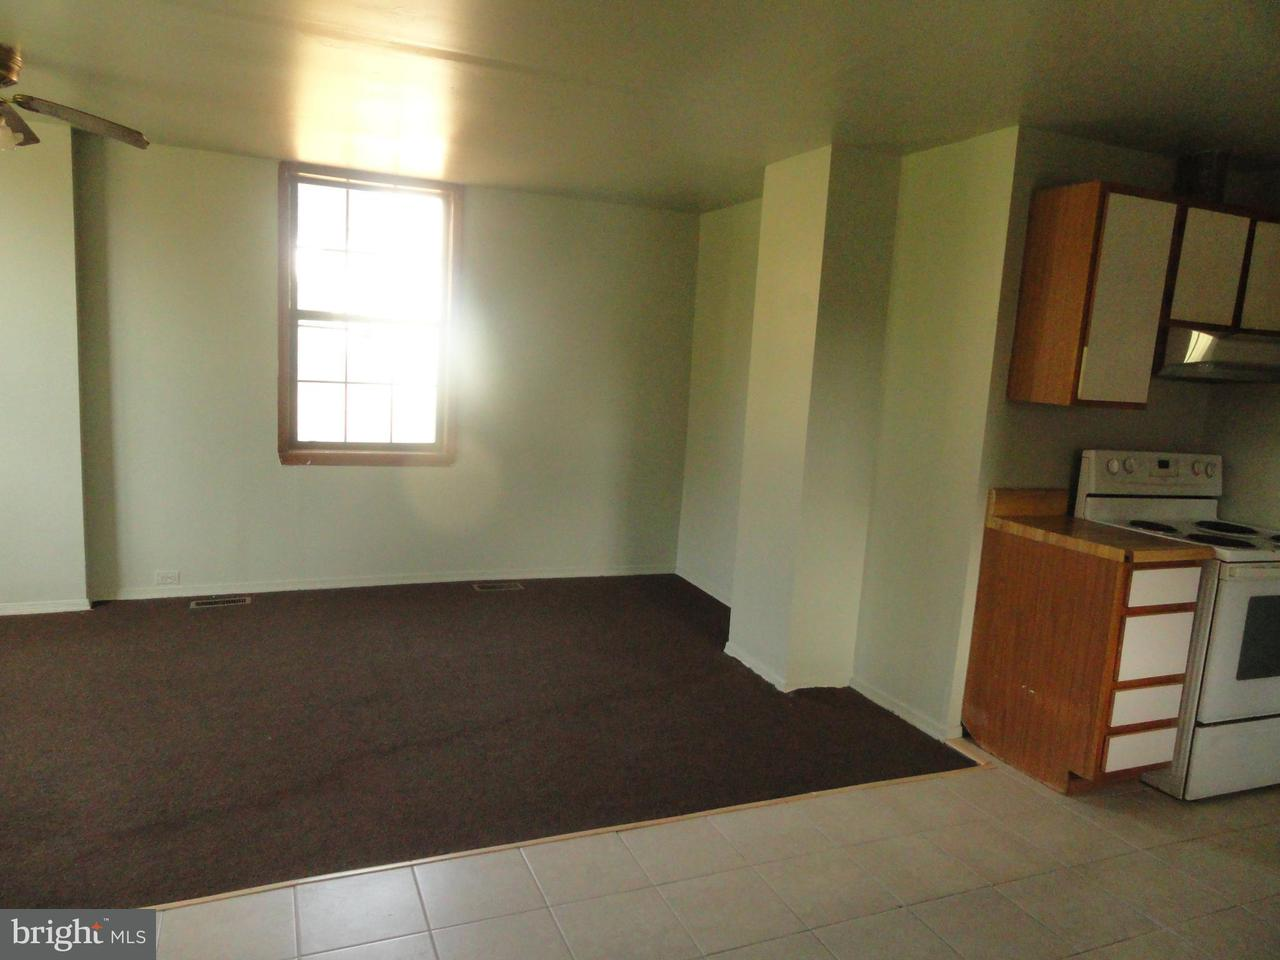 Other Residential for Rent at 5906 Benton Heights Ave #1st Floor Baltimore, Maryland 21206 United States